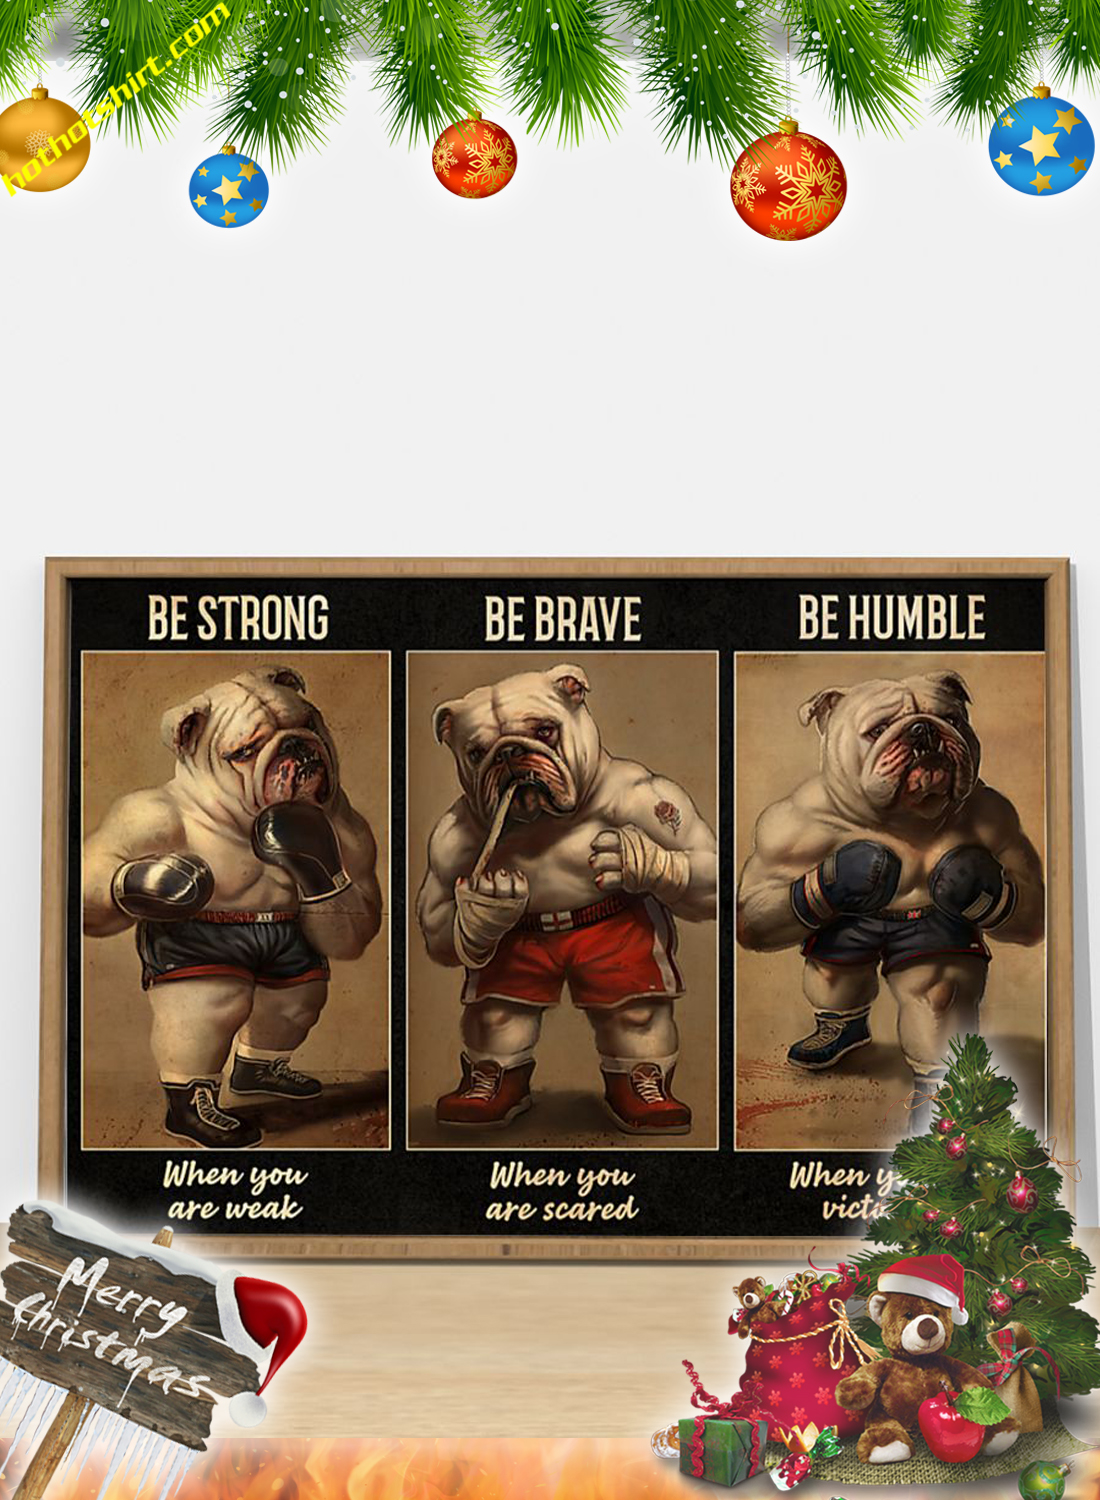 Bulldog Boxer Be strong be brave be humble poster 1Bulldog Boxer Be strong be brave be humble poster 1